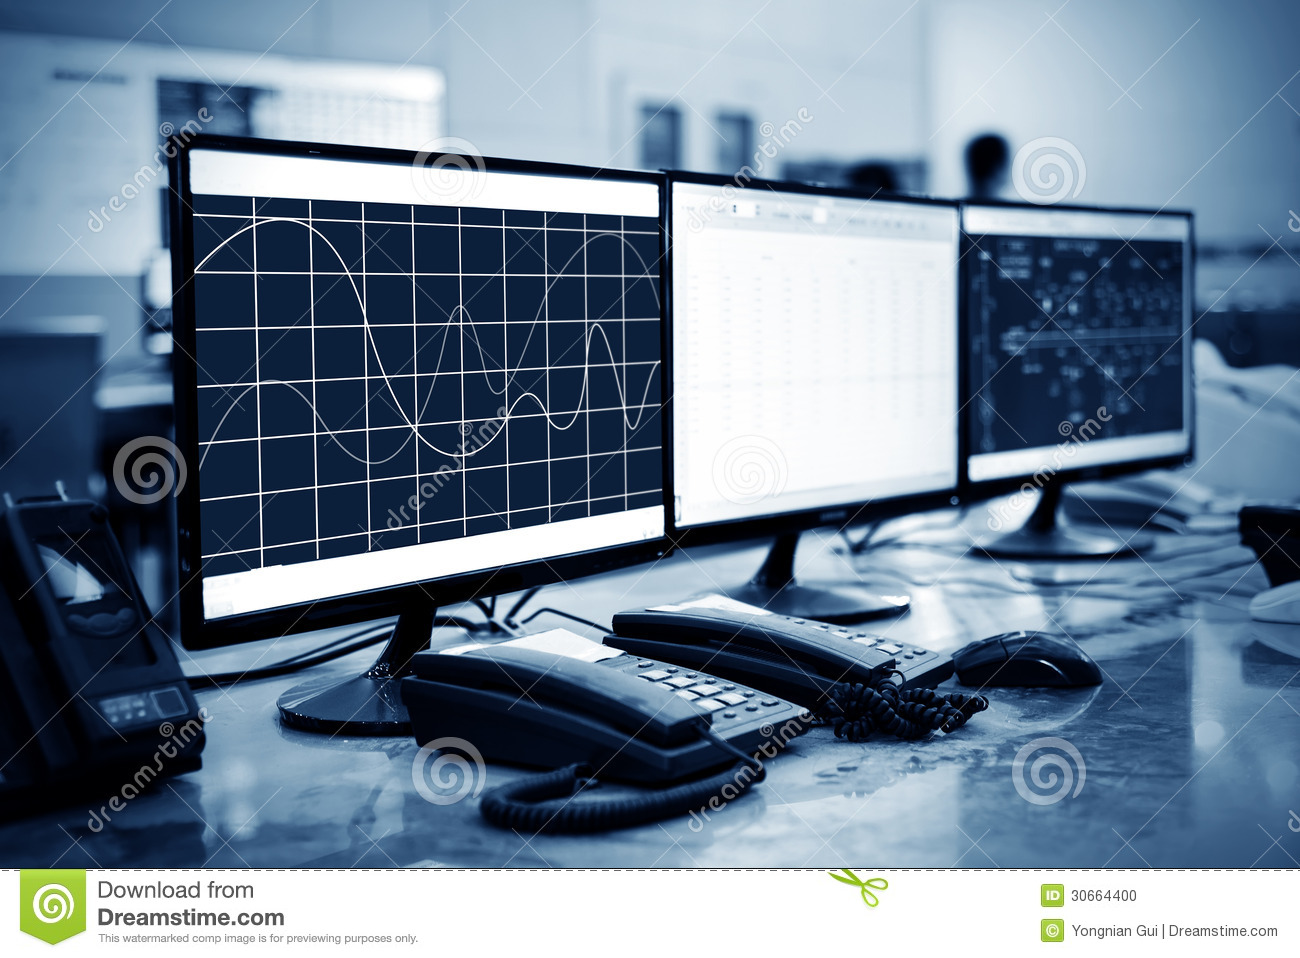 Modern Plant Control Room Stock Photo Image 30664400